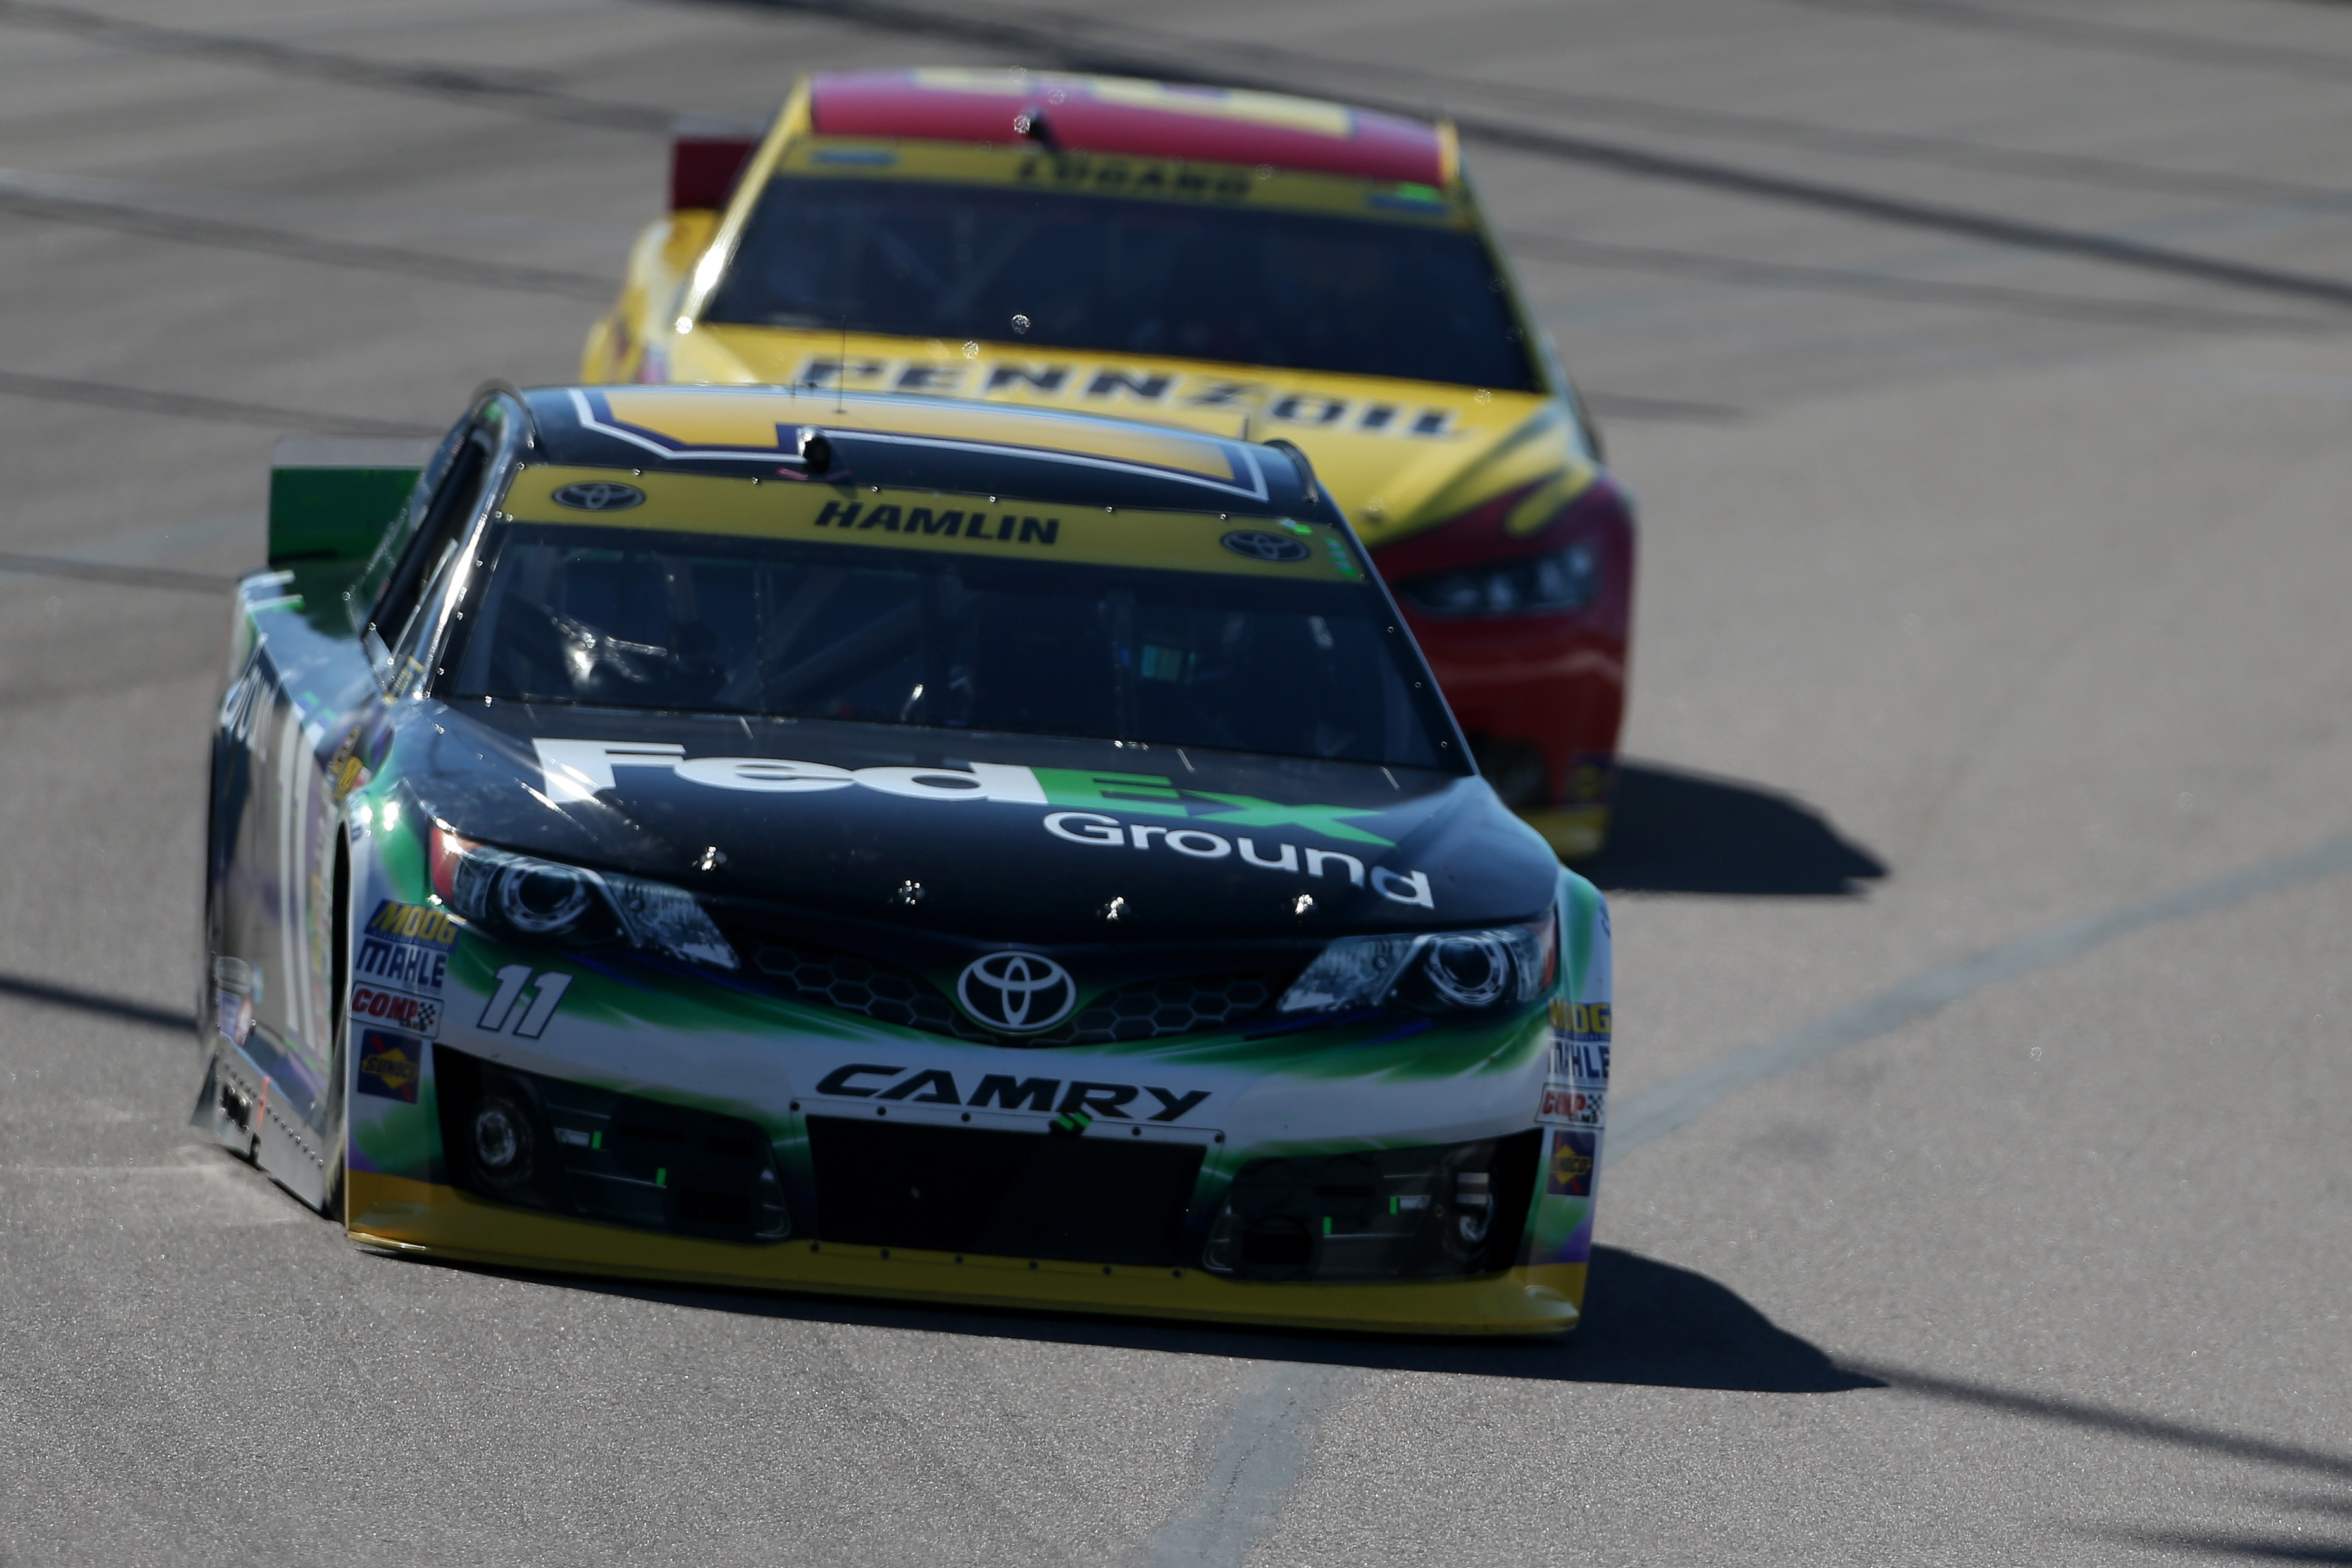 Handicapping the Chase for the Sprint Cup contenders